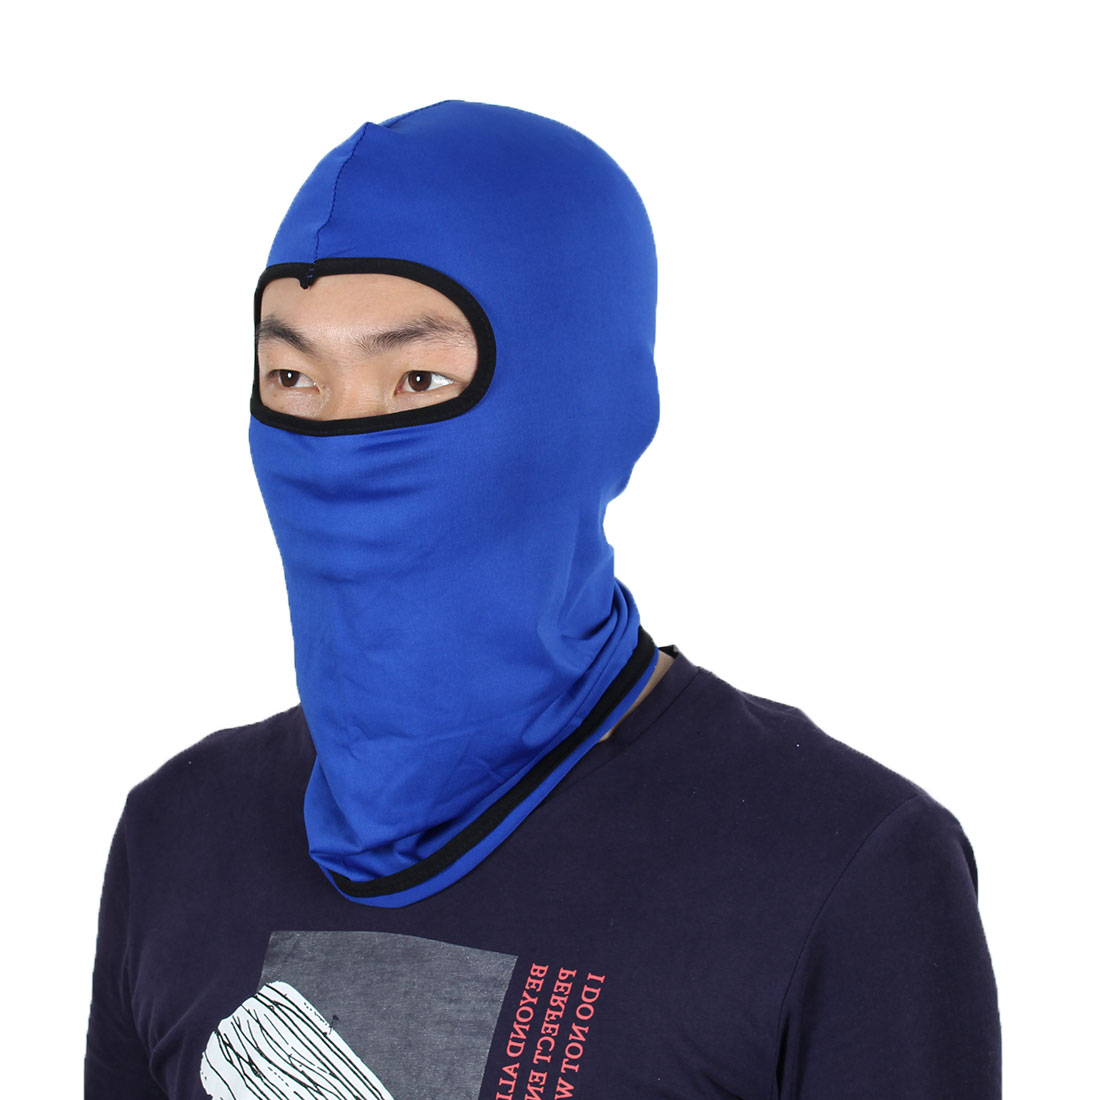 Full Face Mask Outdoor Activities Neck Protector Hat Helmet Balaclava Dark Blue by Unique-Bargains